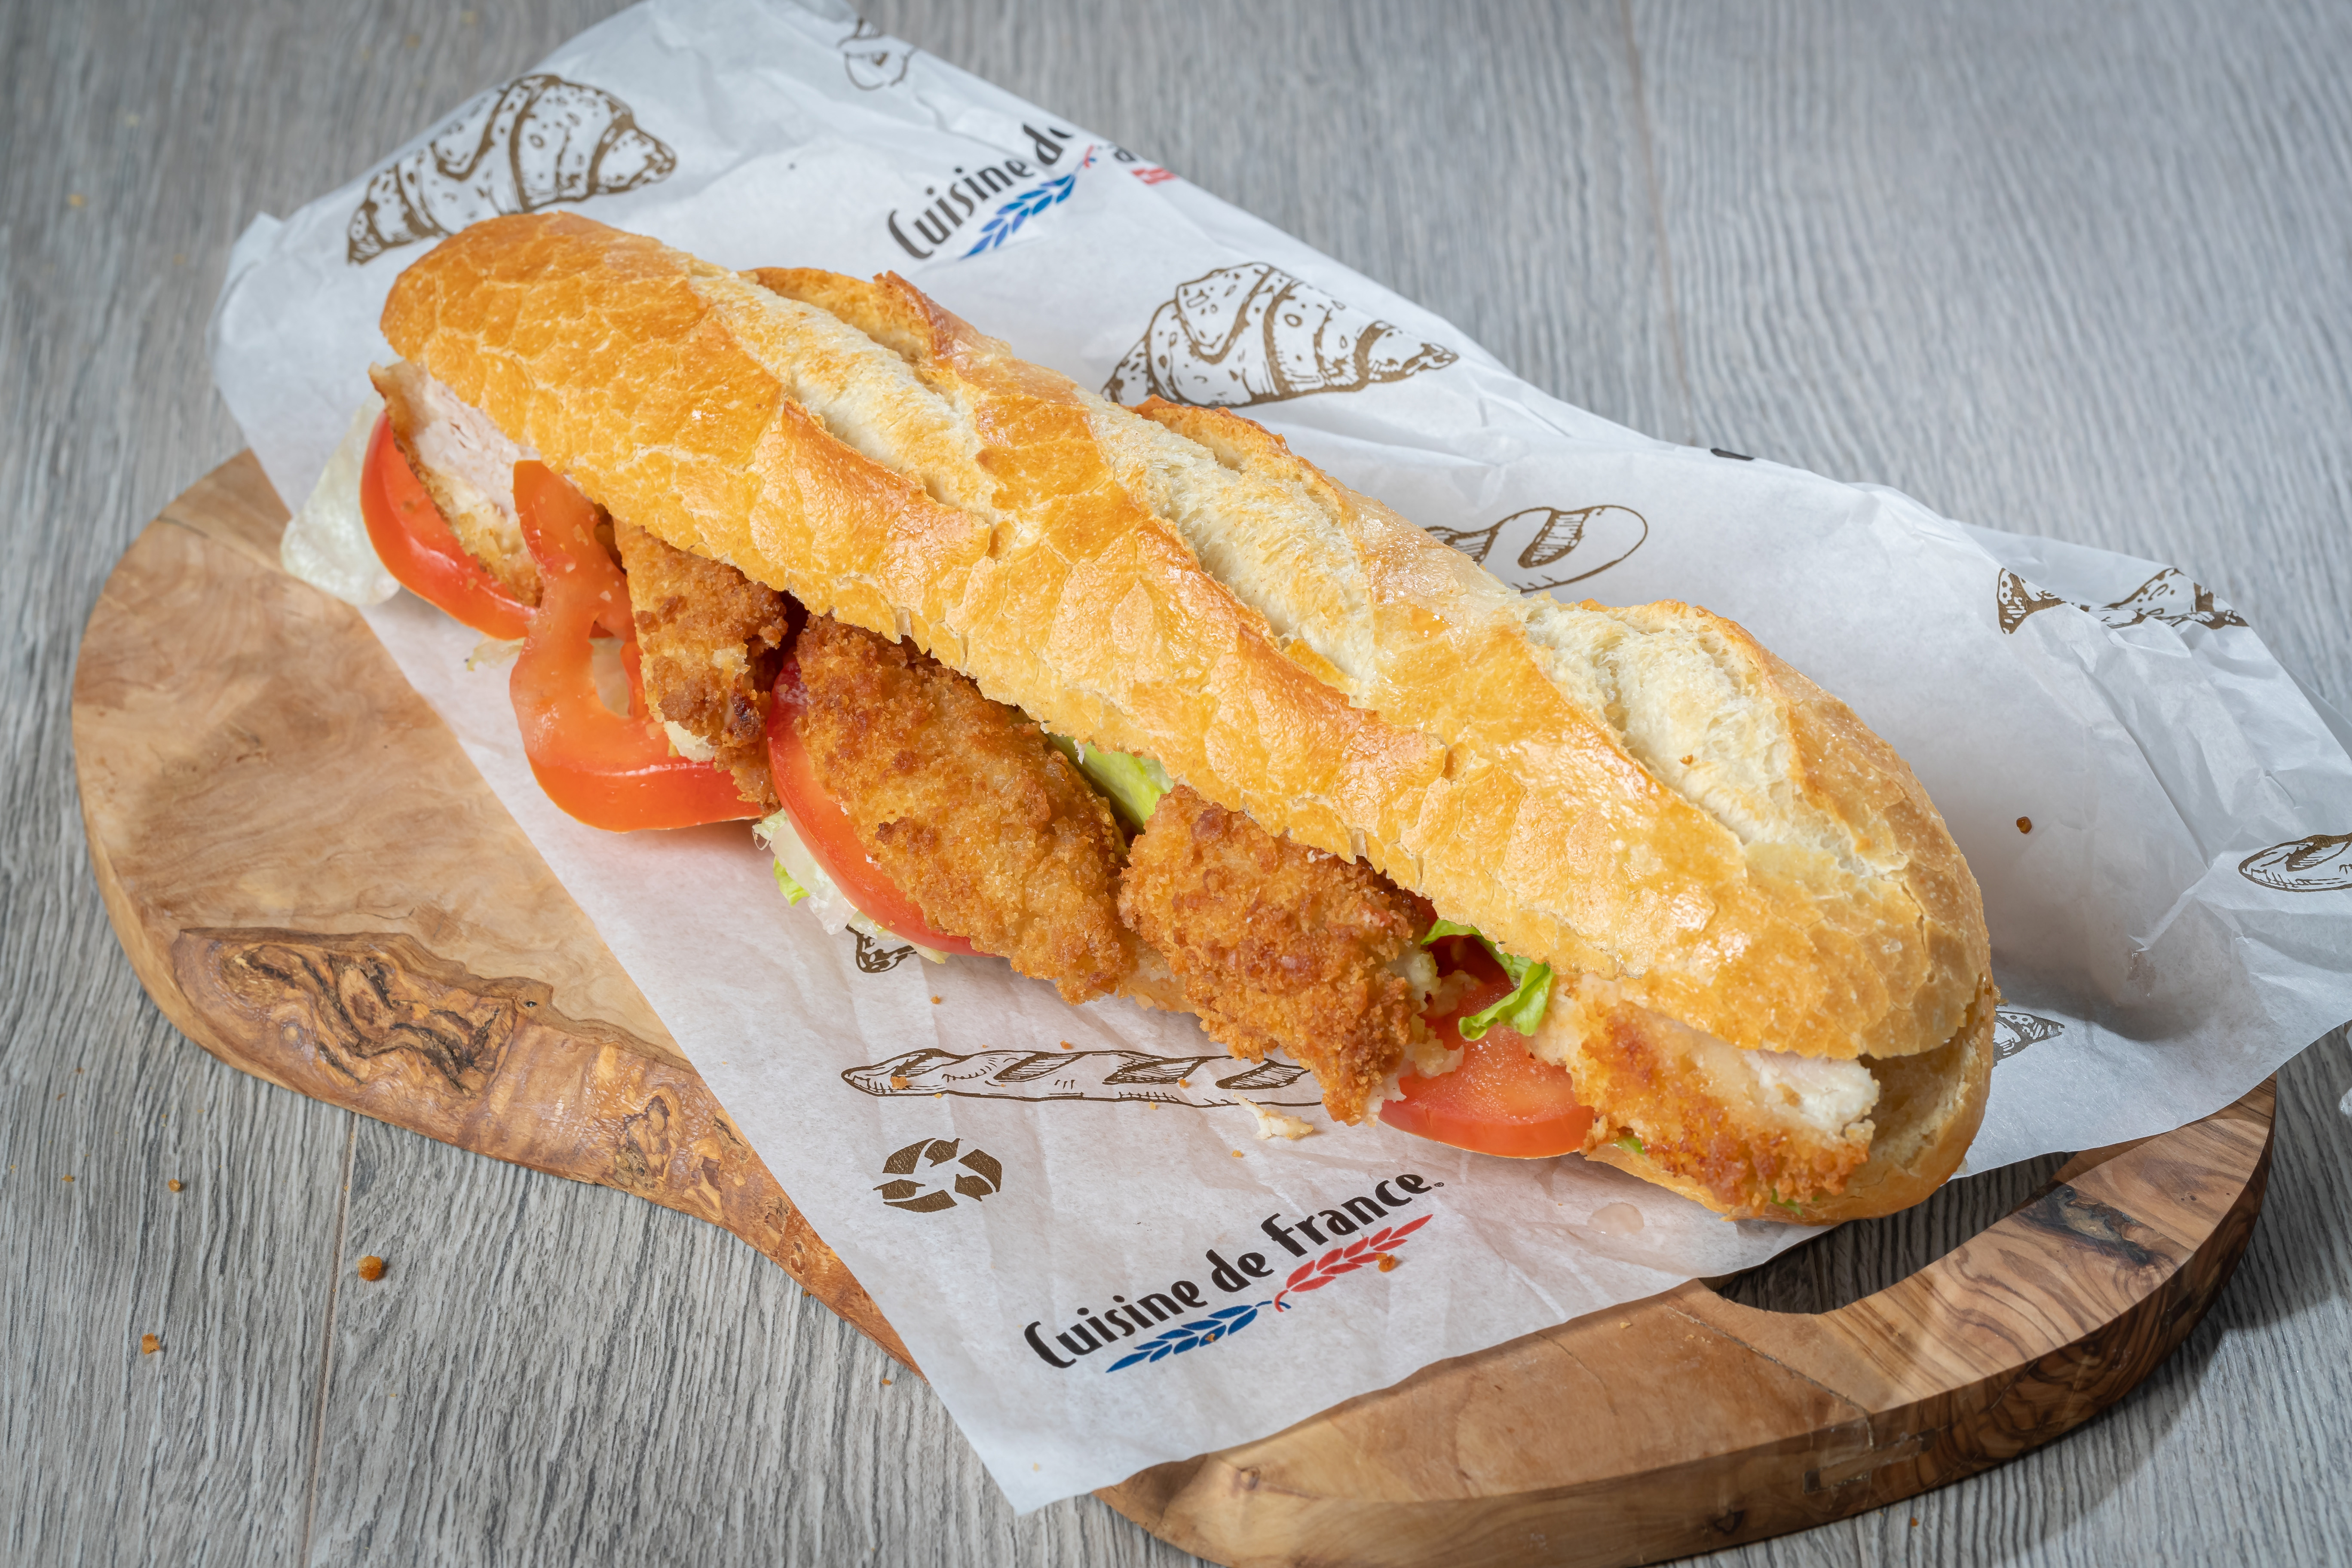 The Le Demi, a popular french baguette with Deli's